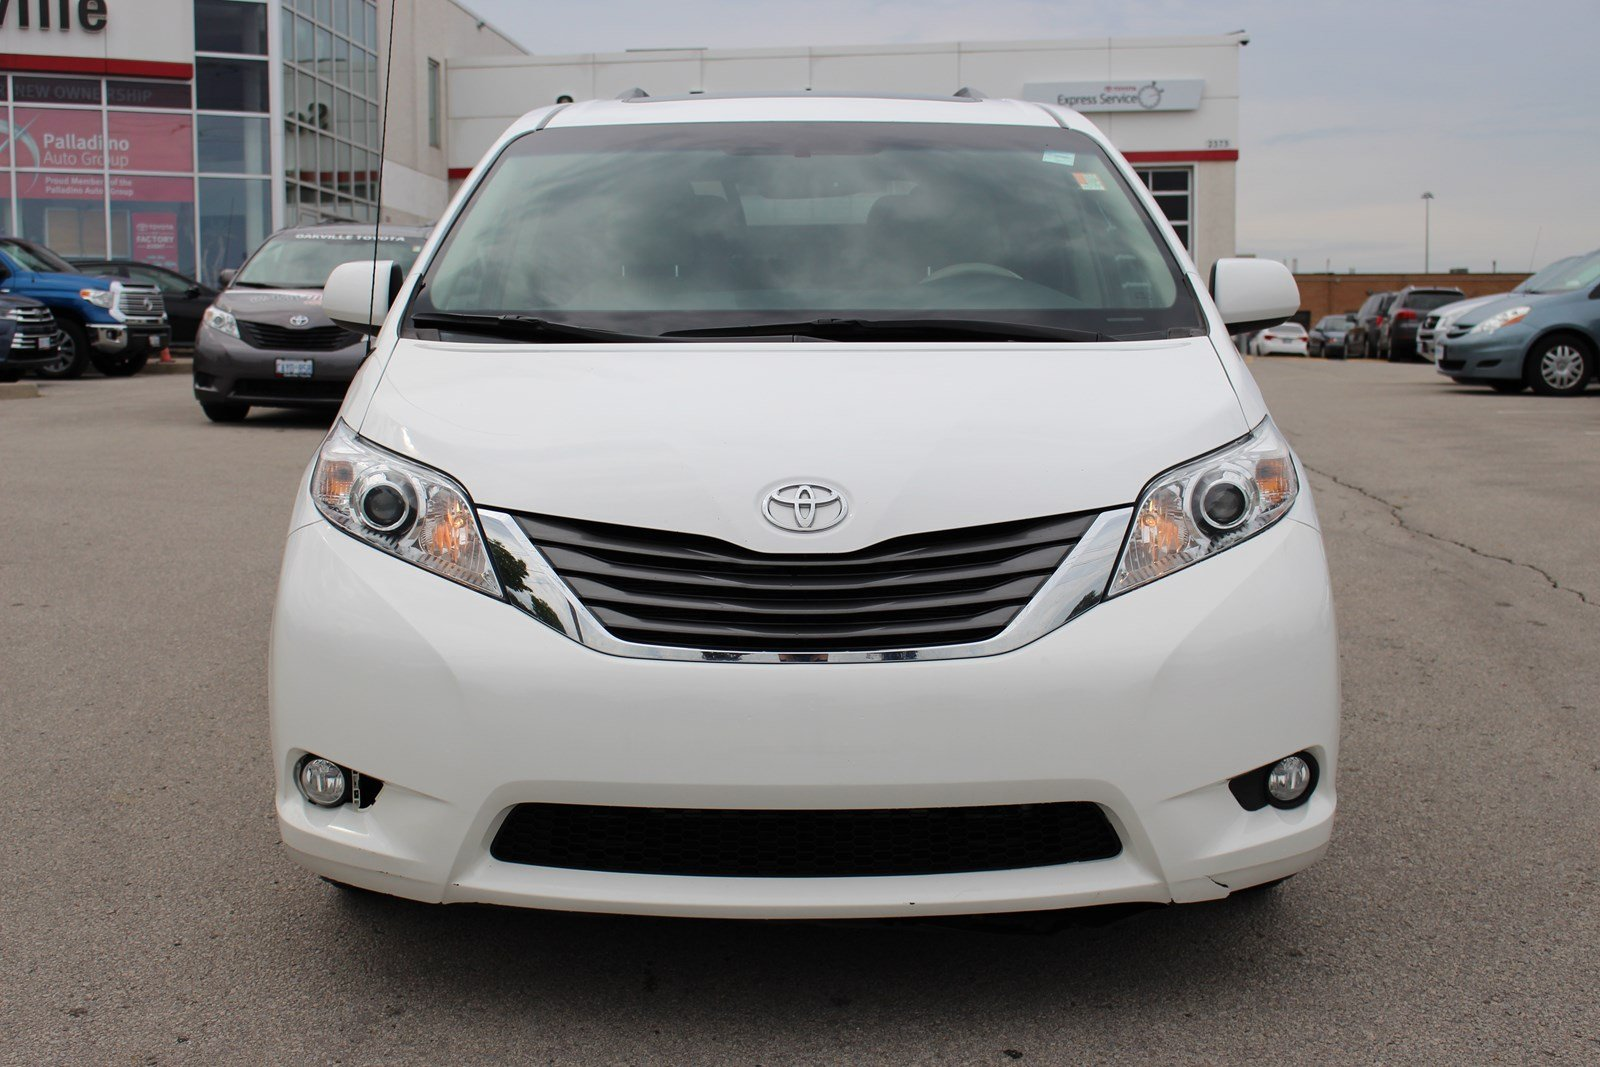 pre owned 2013 toyota sienna xle awd mini van passenger in oakville p0574 oakville toyota. Black Bedroom Furniture Sets. Home Design Ideas